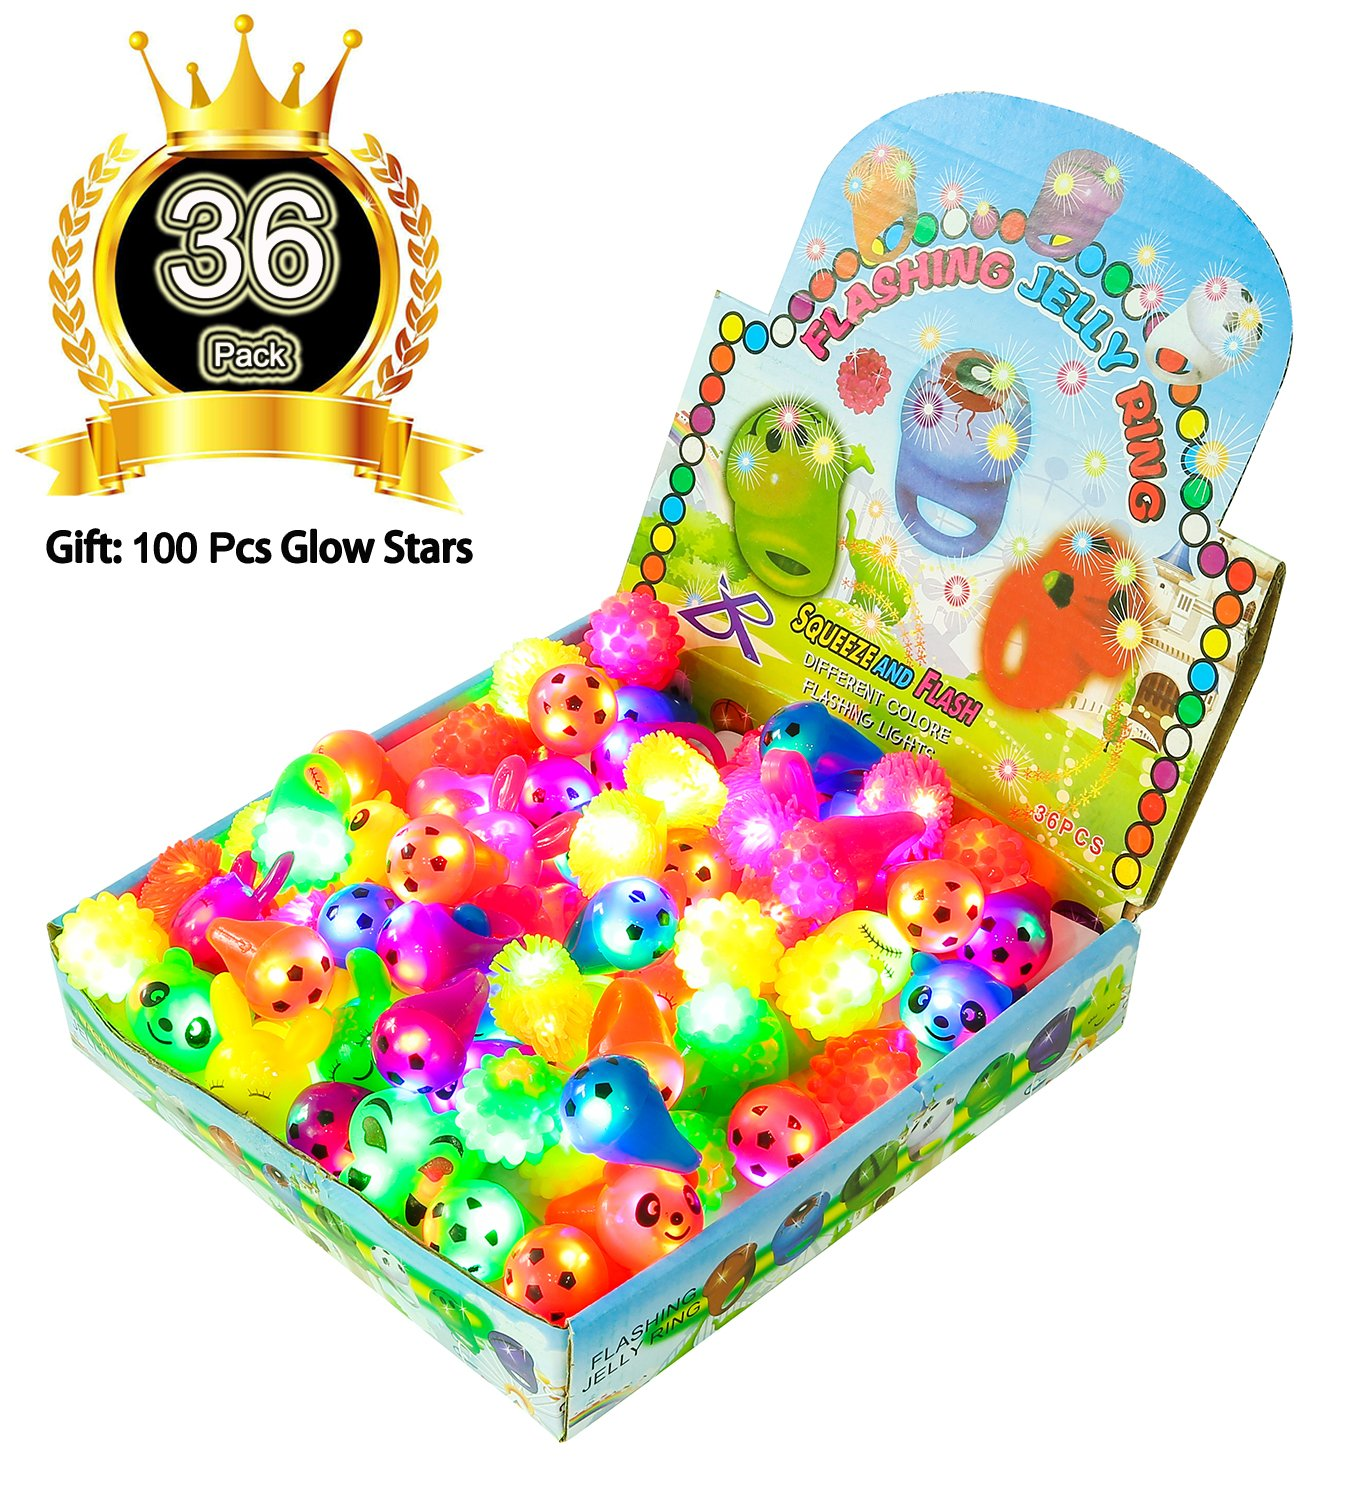 Mikulala 36 Pack Glow In The Dark Party Favors for Kids Light Up Rings Toys(6 Colors 10 Shapes) with 100 Pcs Stars - Party Supplies, kid prizes, Flashing Led Jelly Bumpy Rings for Birthday, Football by Mikulala